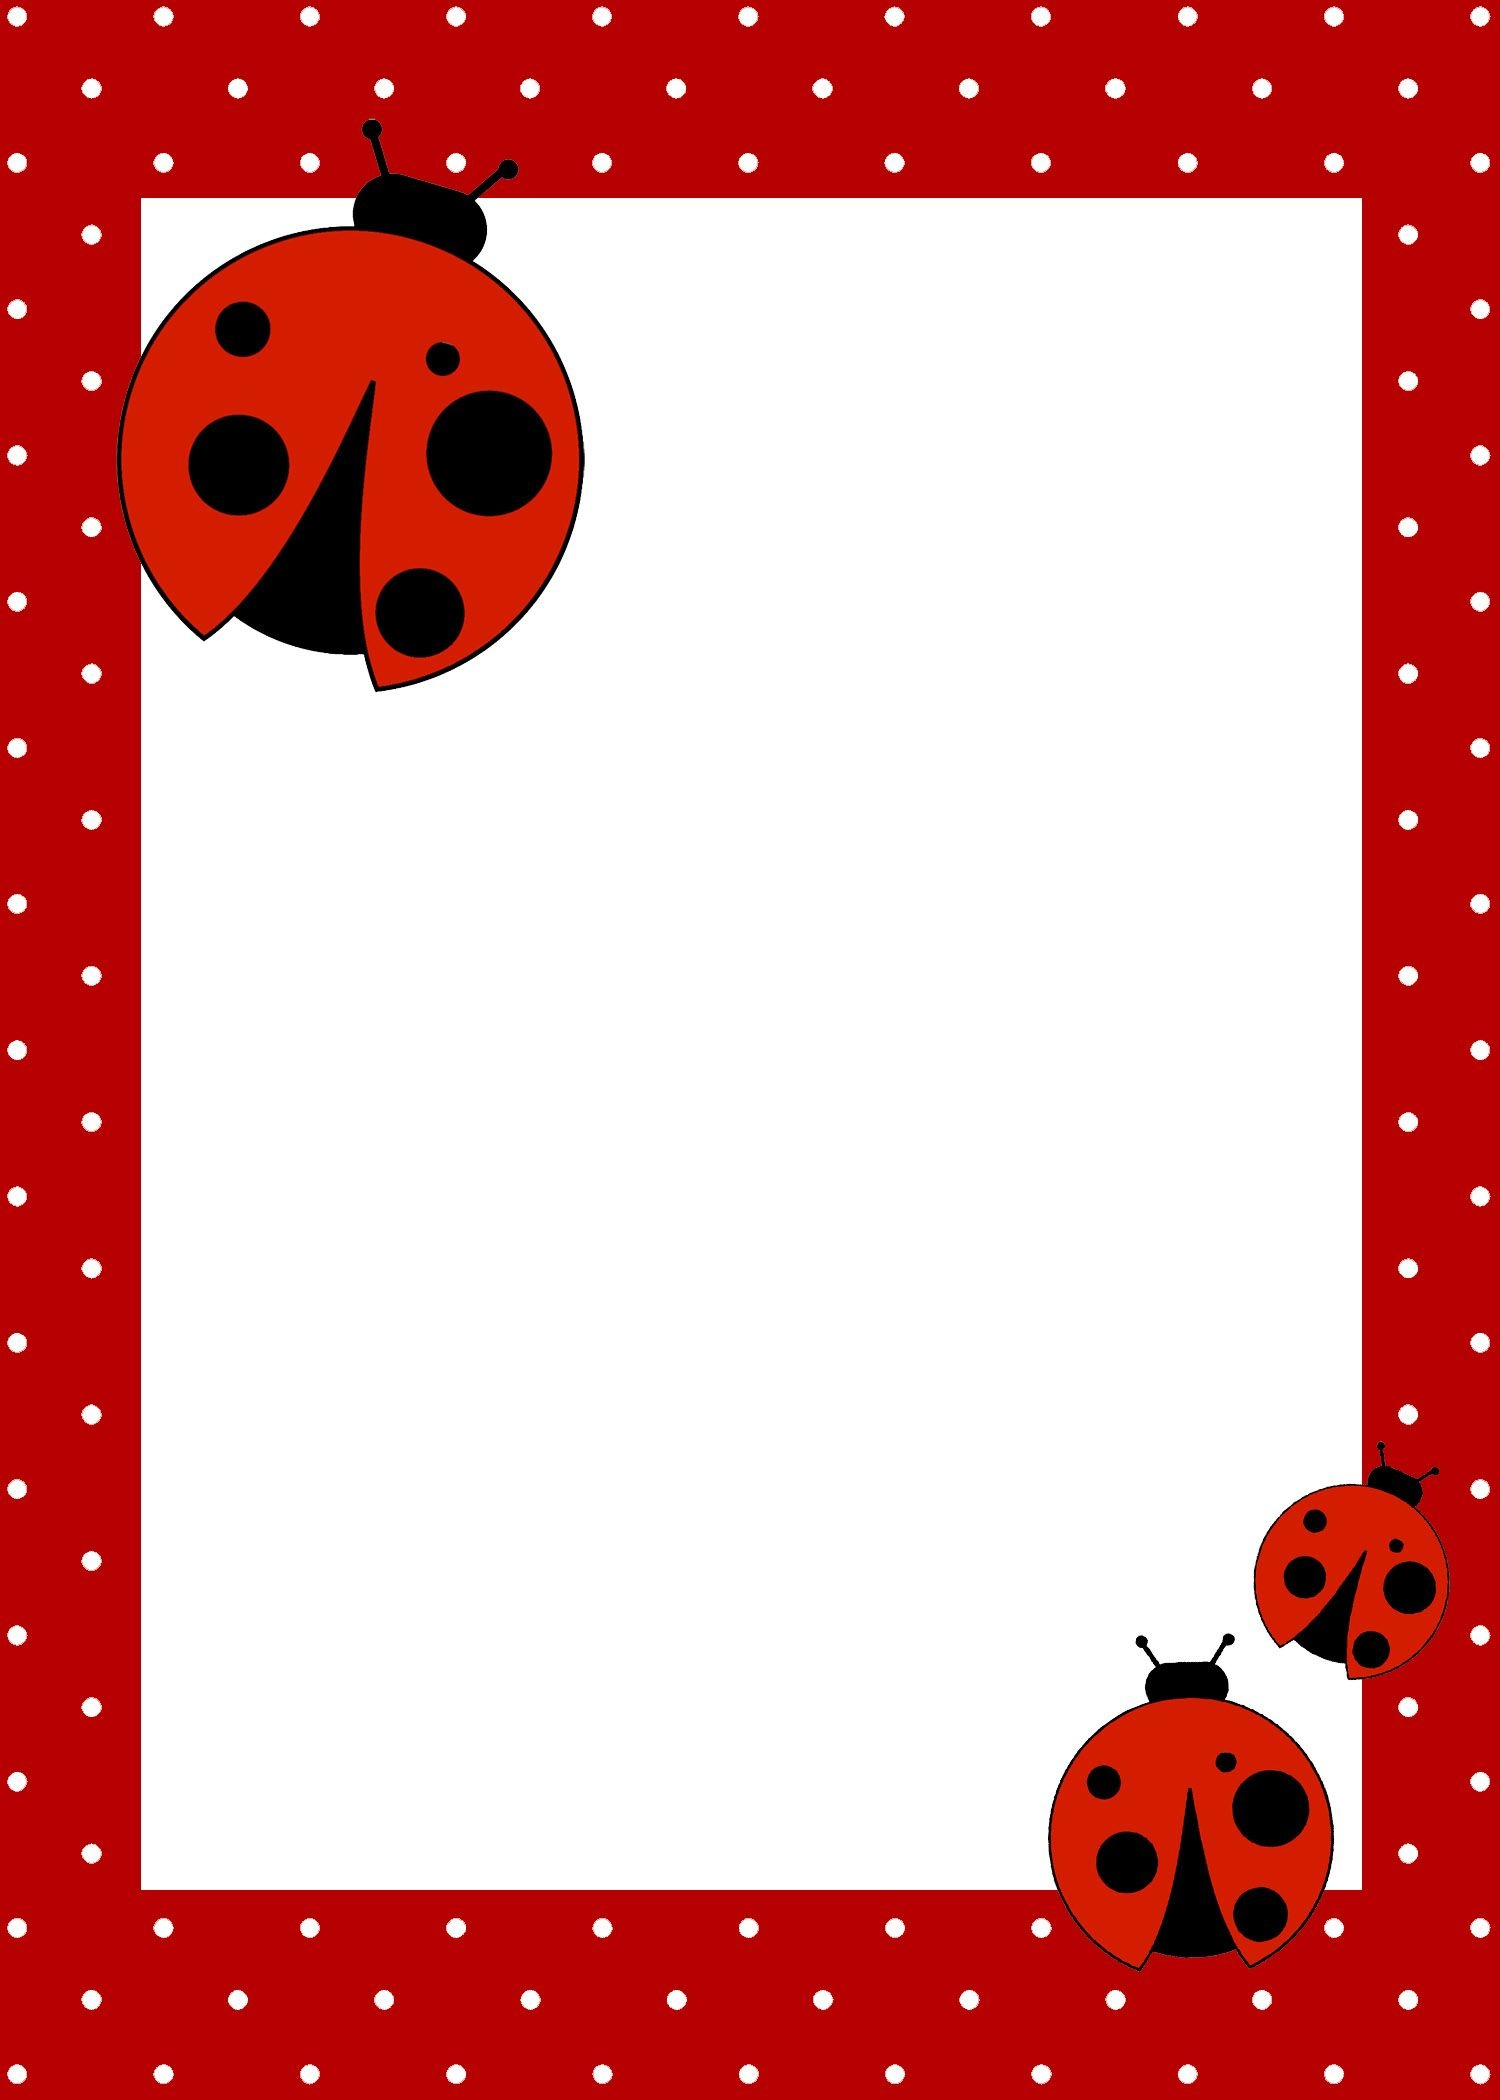 Ladybug Birthday Invitation Templates Free - Tutlin.psstech.co - Free Printable Ladybug Baby Shower Invitations Templates